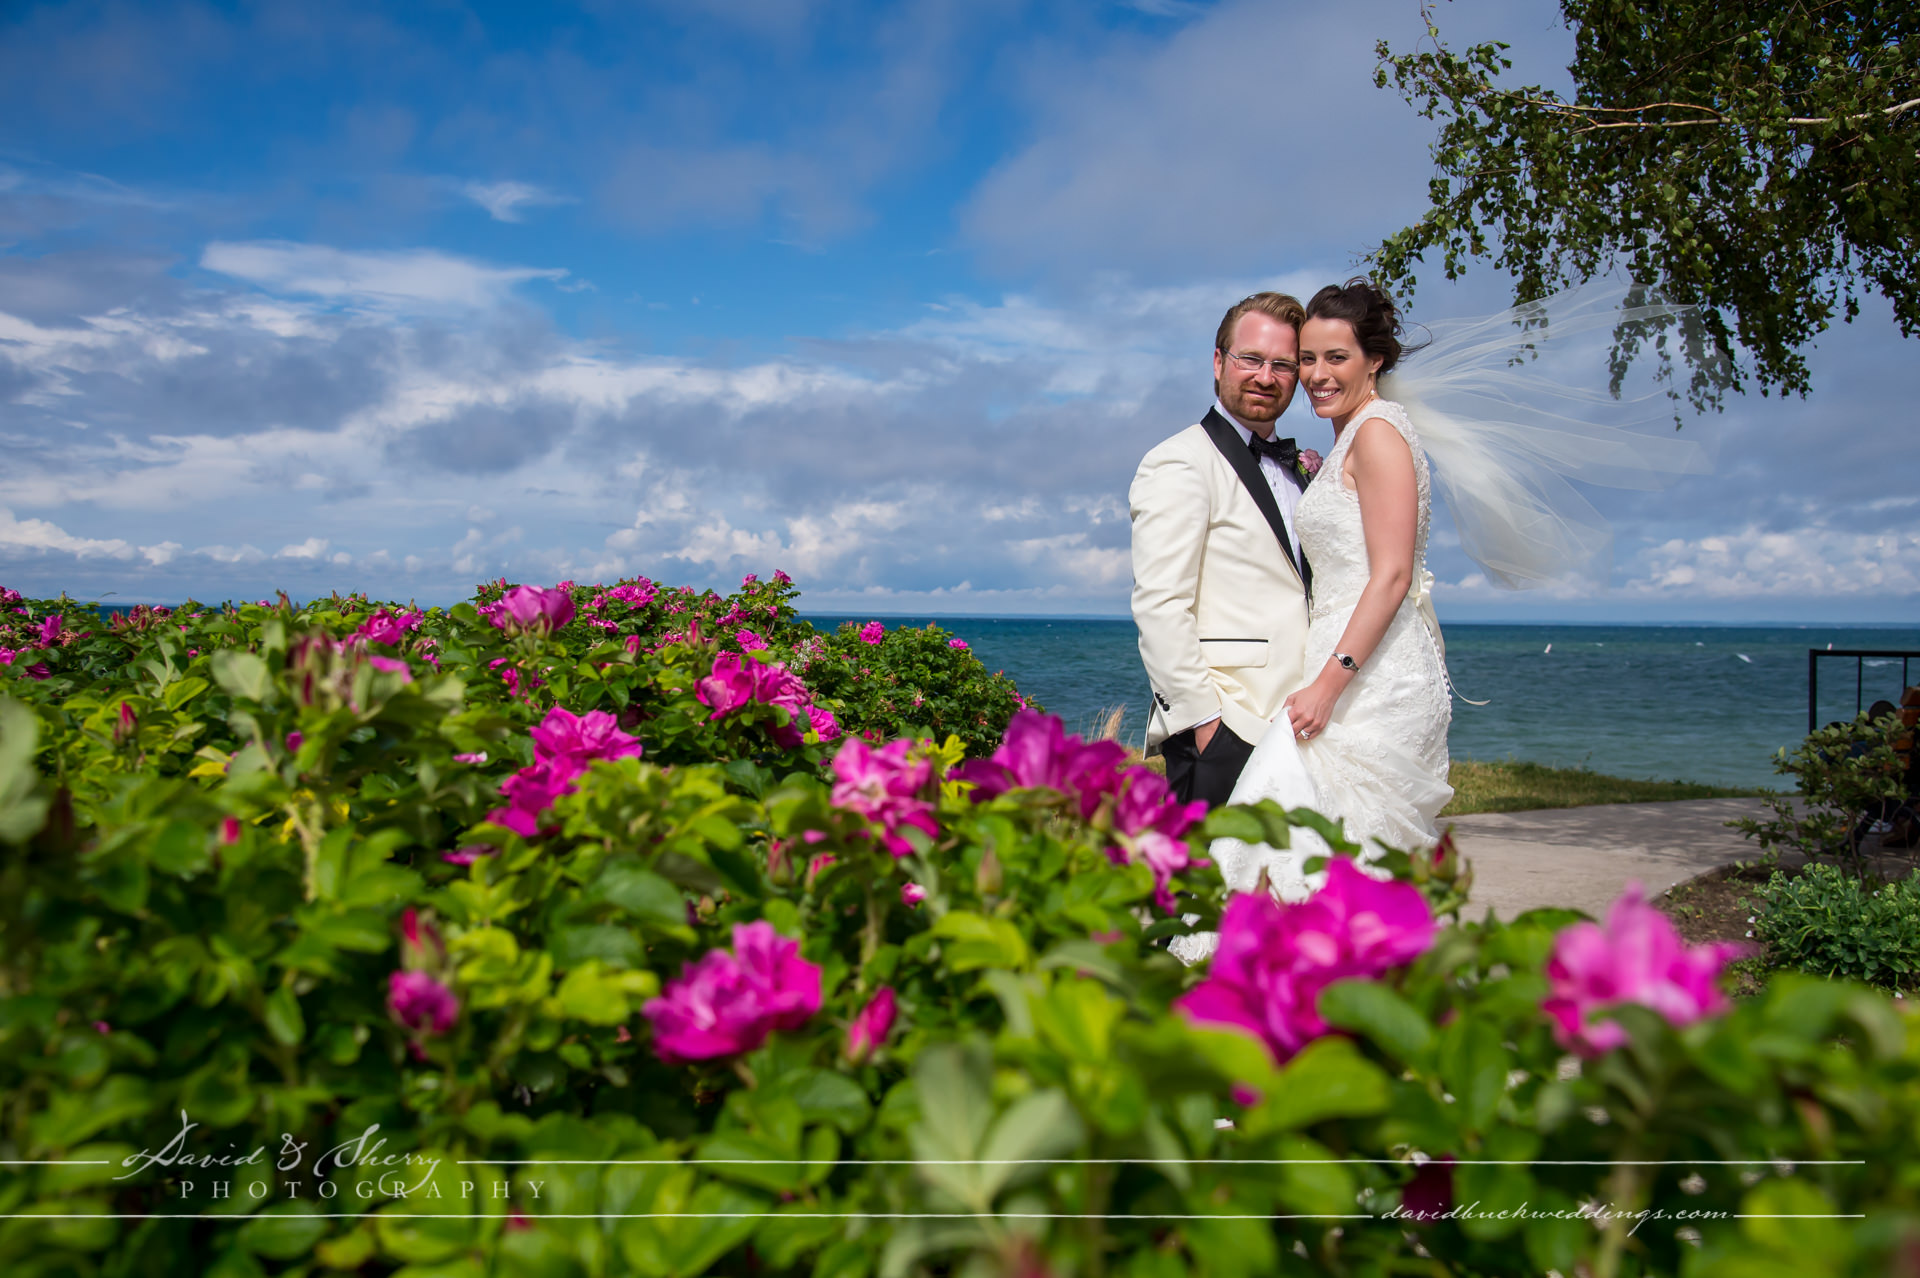 Craigleith_Ski_Club_Wedding_020